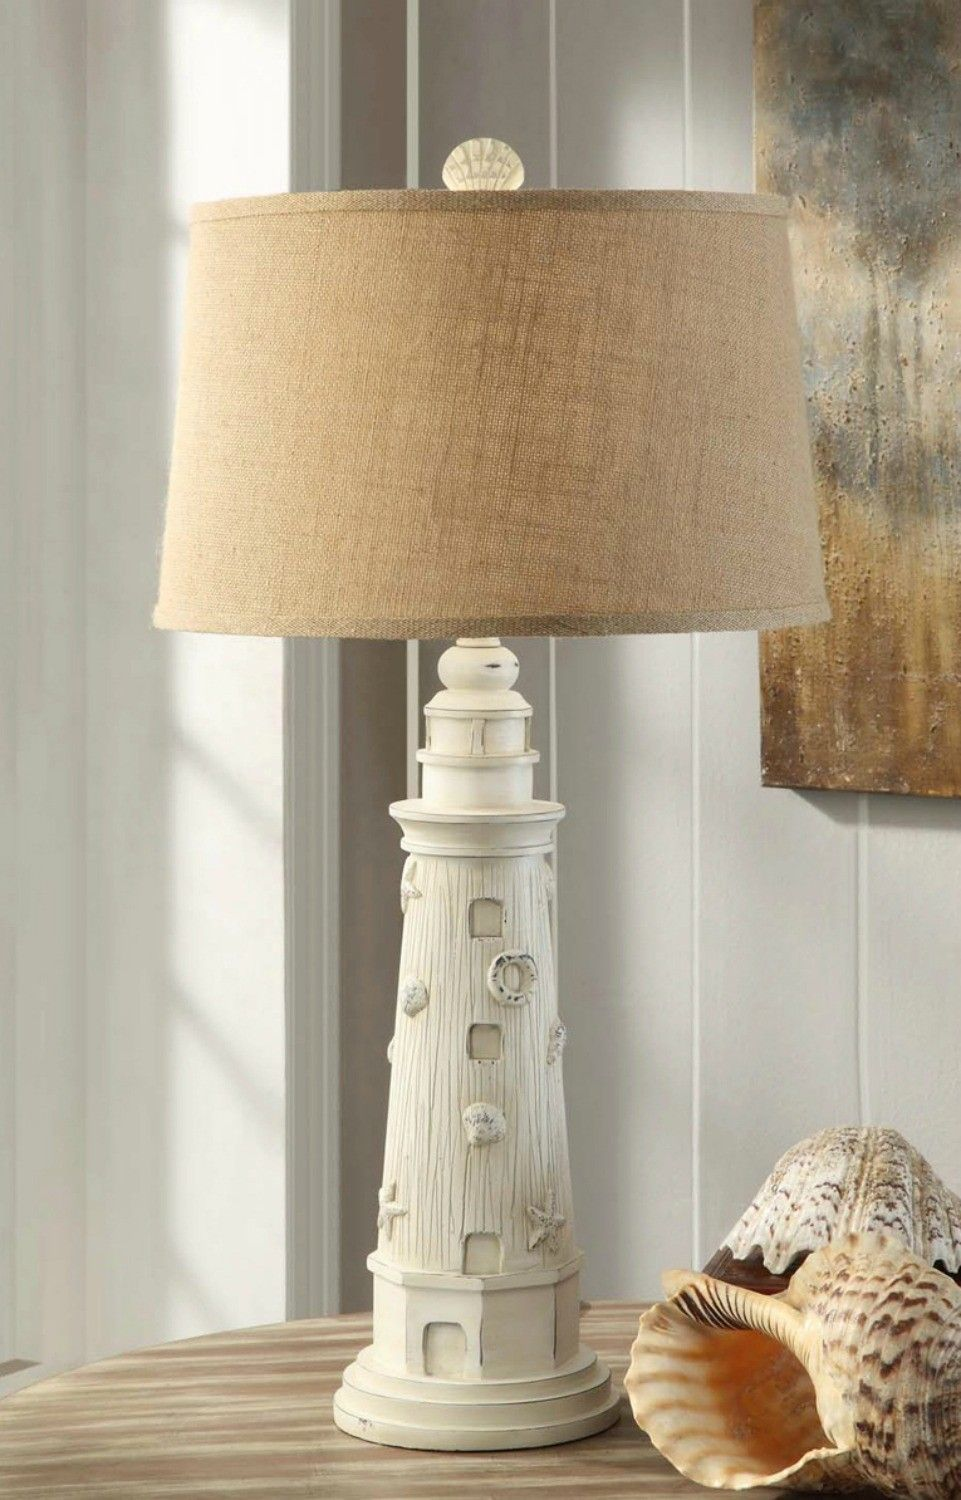 Guiding Lighthouse Table Lamp Cottage Pretty Lighthouse Decor Beach House Decor Lighthouse Lamp